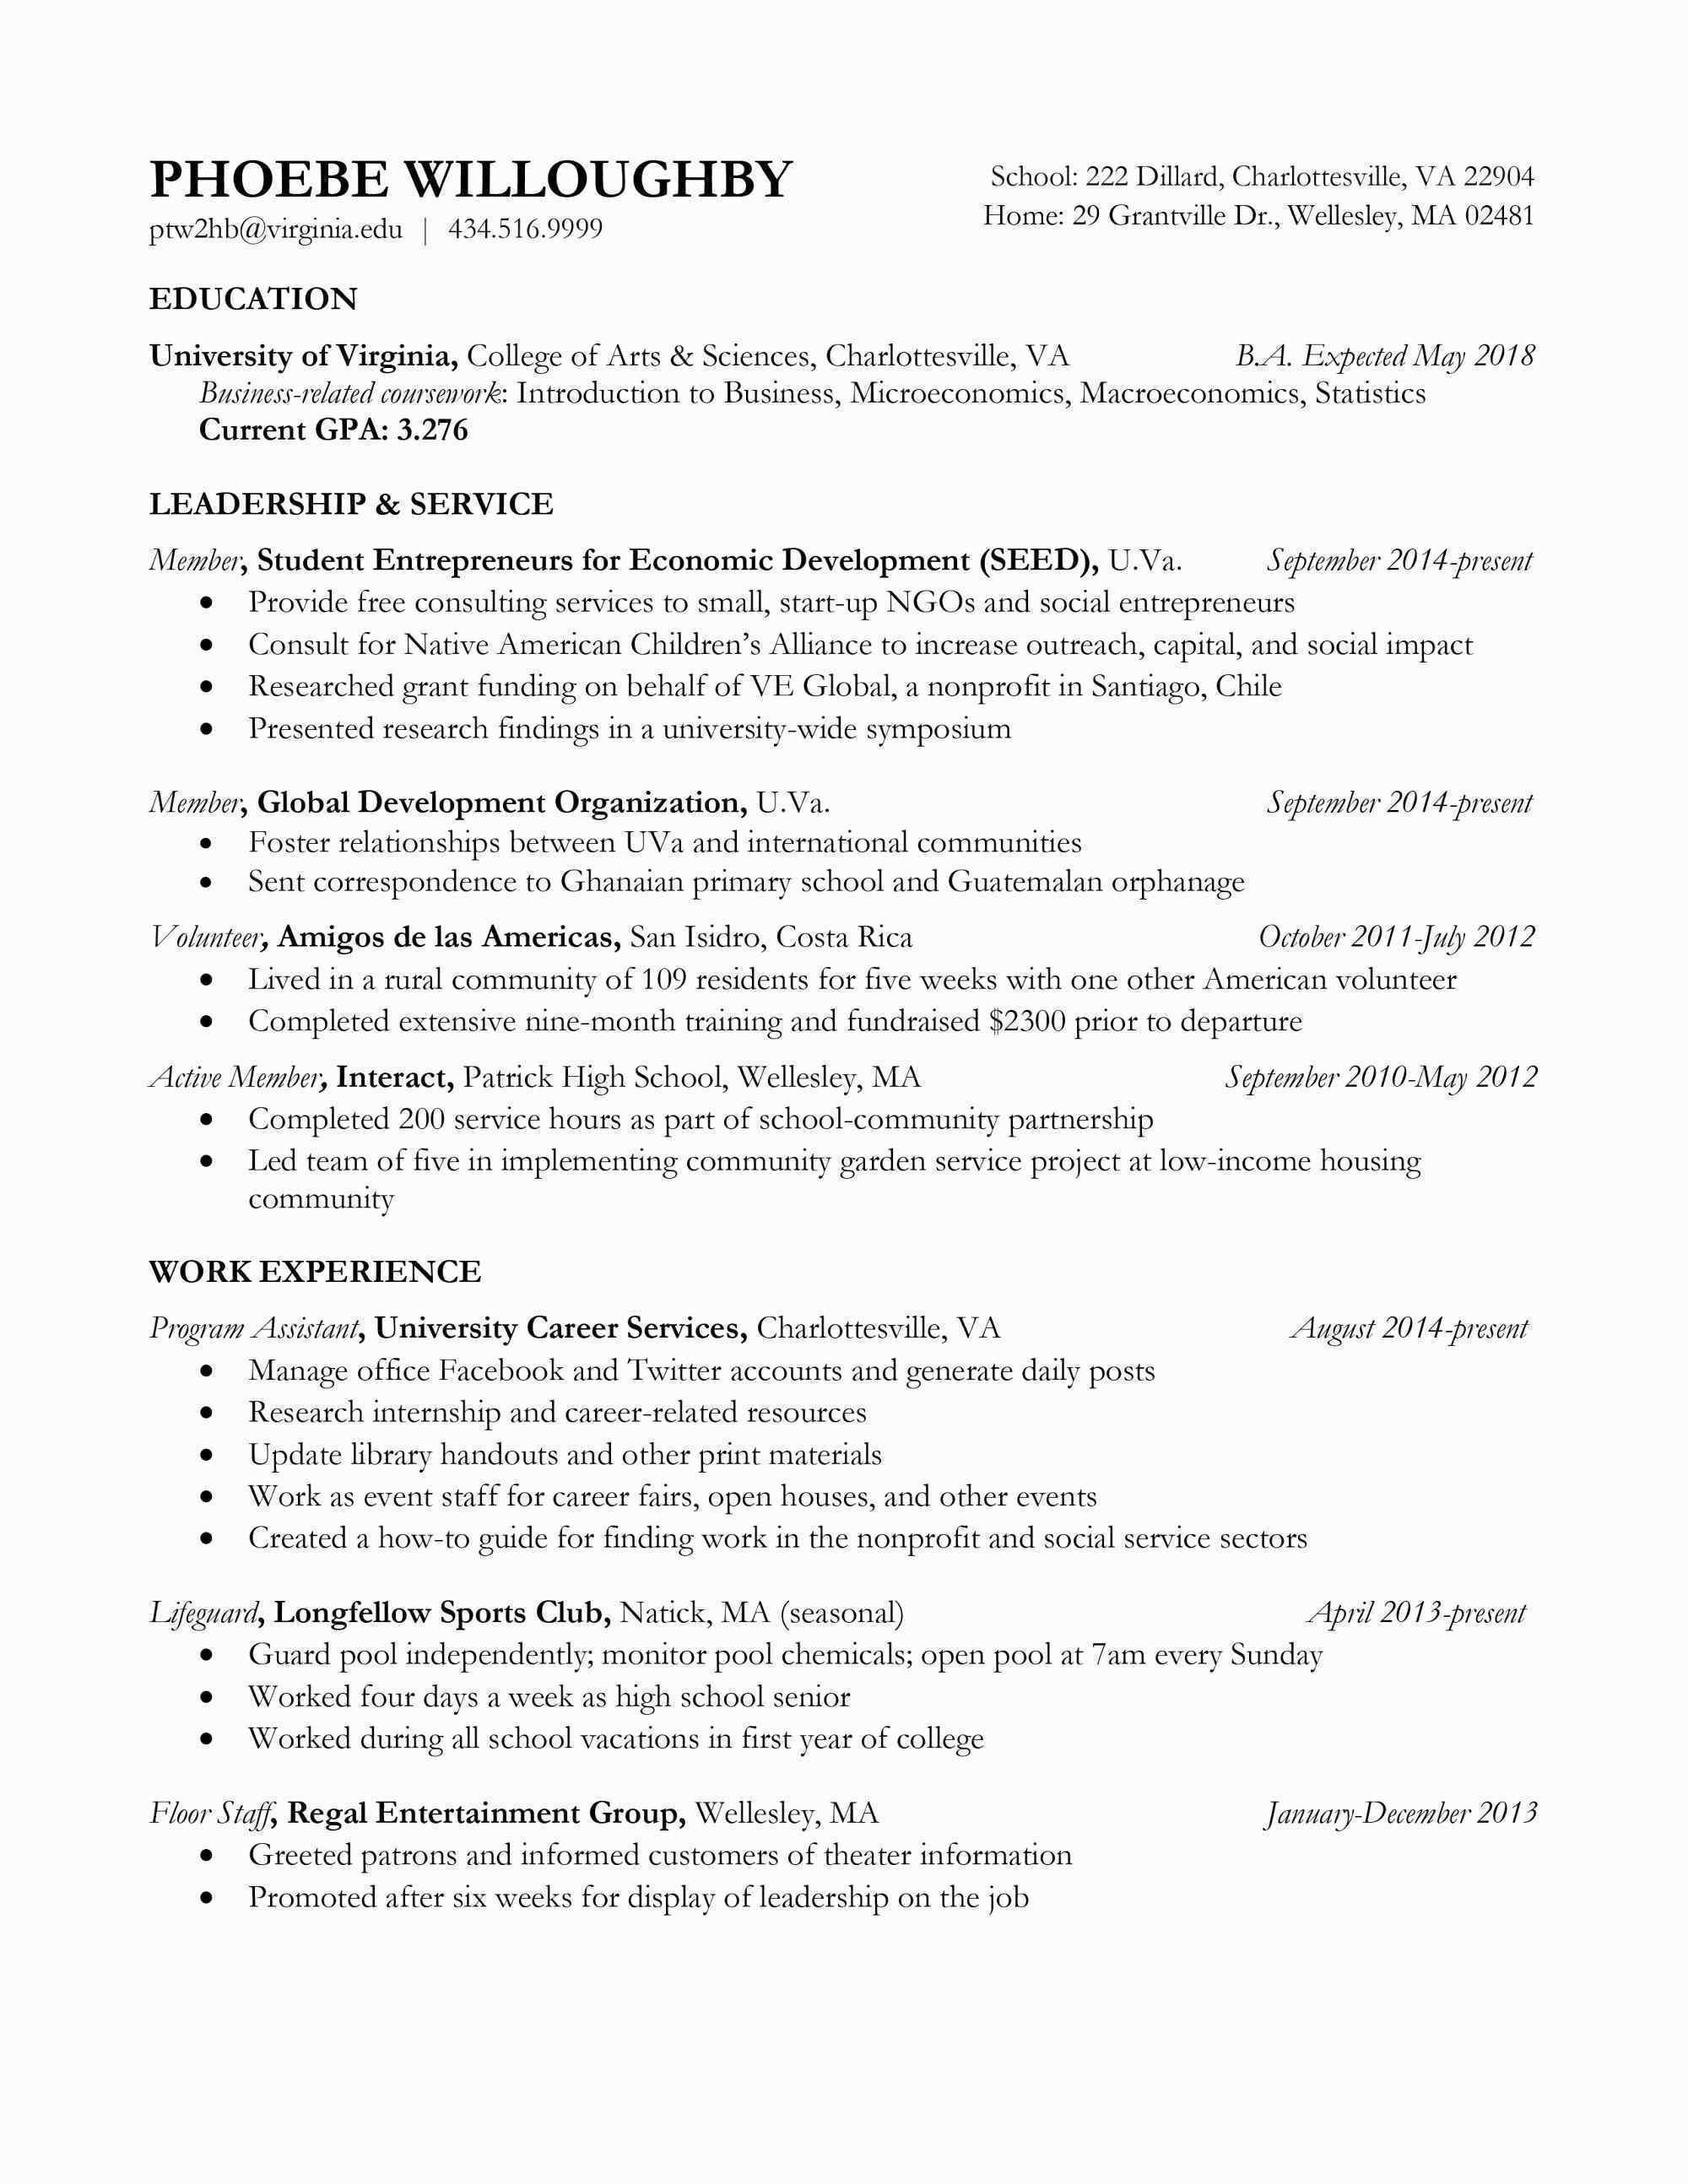 015 Introduction Sample Forsearch Paper Unique Business Development Letter Awesome Cover Of Questionnaire For Research Associate Position Full